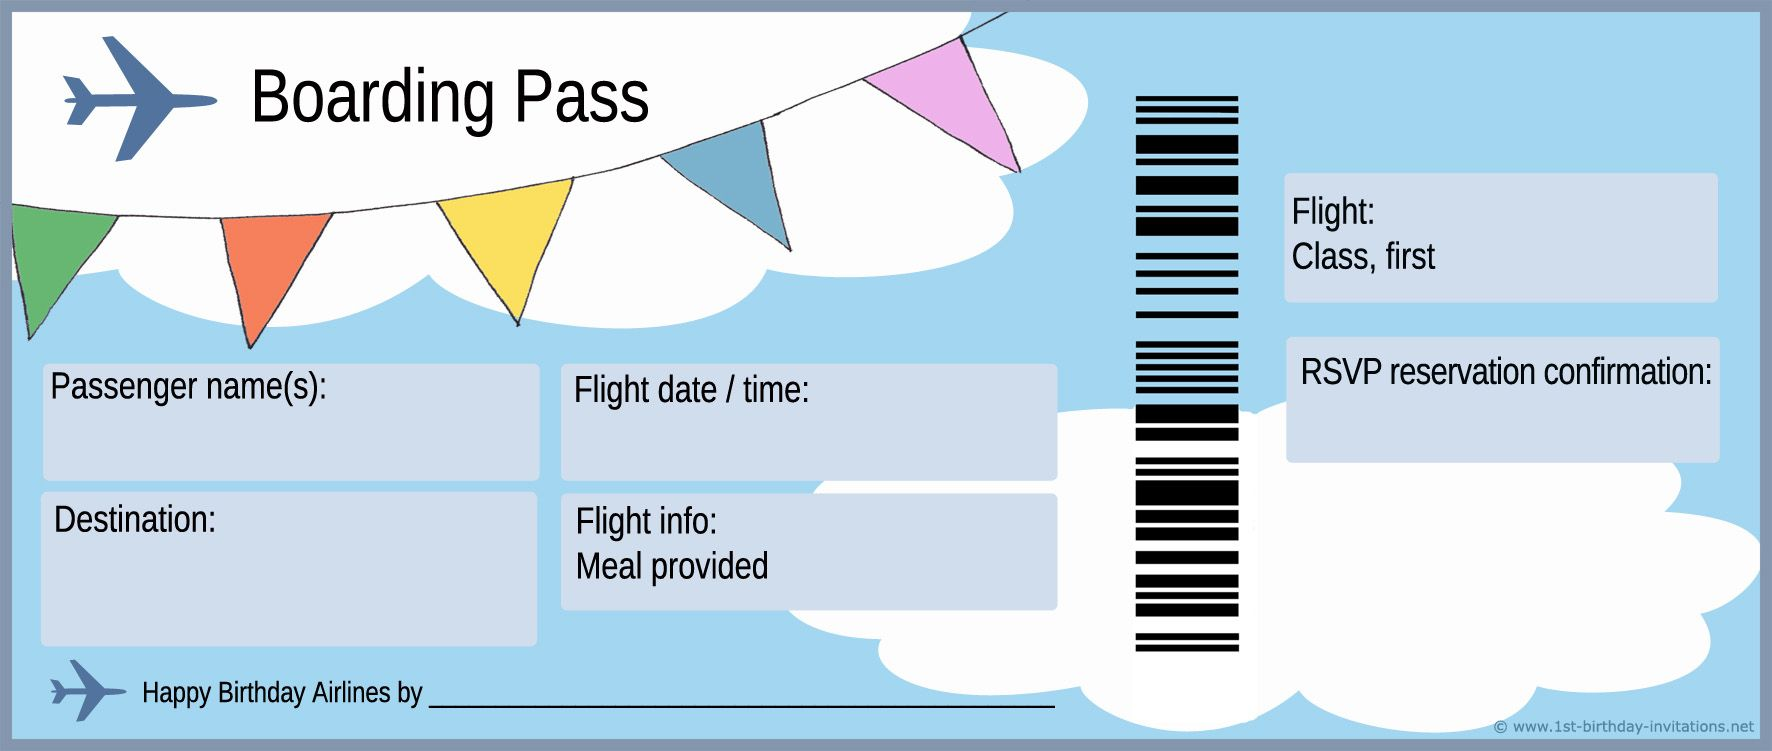 image relating to Free Printable Airline Ticket Template called Airplane ticket and boarding p for very first birthday occasion